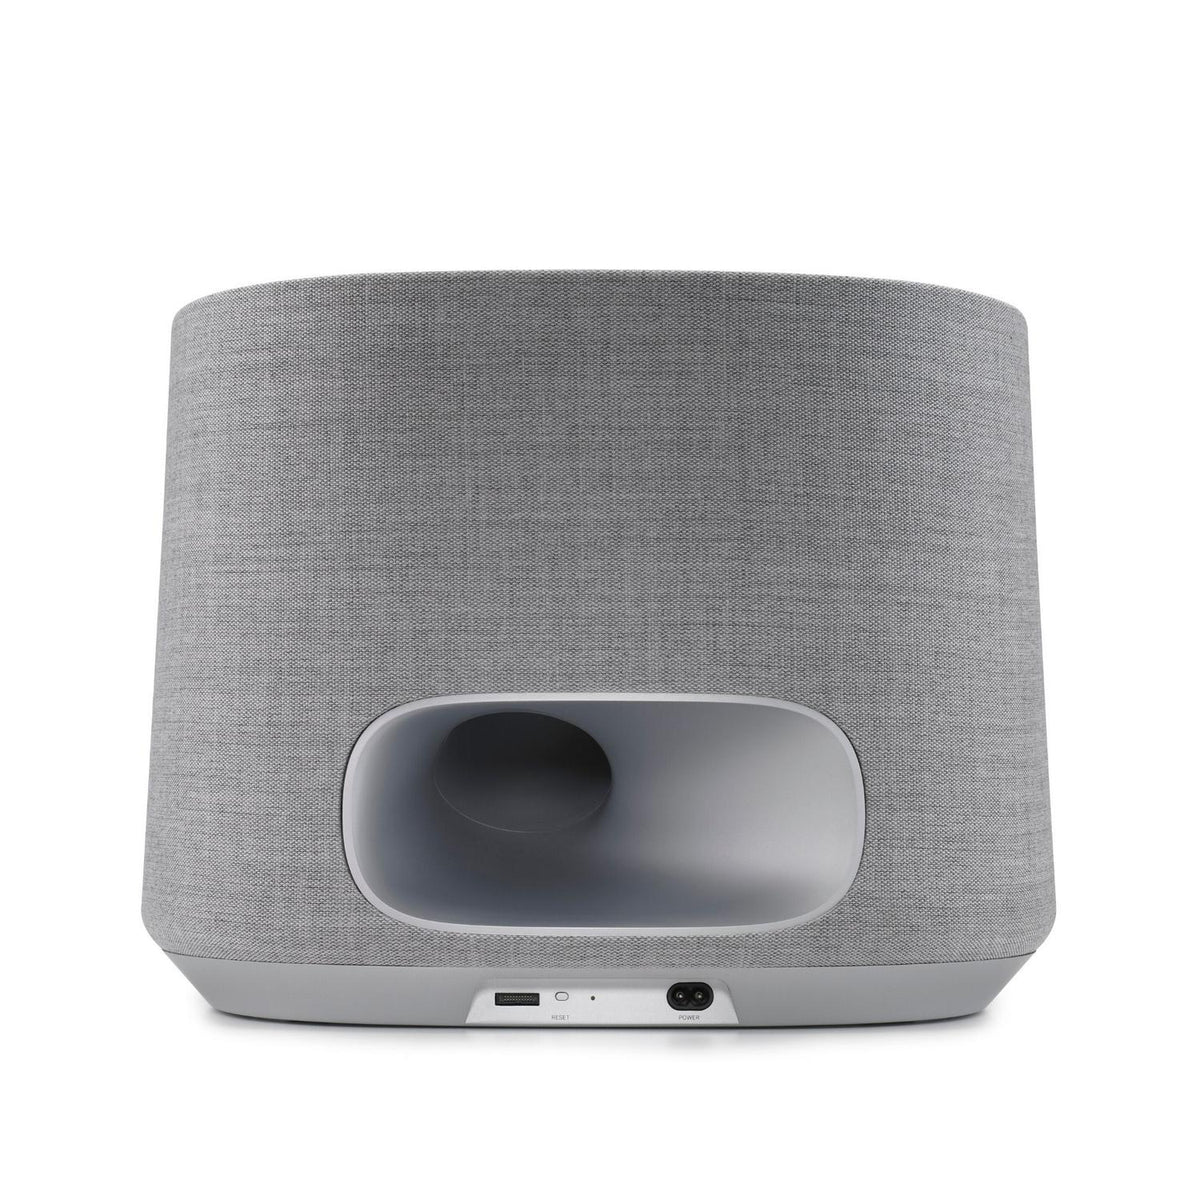 Harman Kardon Subwoofer Subwoofer Citation Sub - vertikal